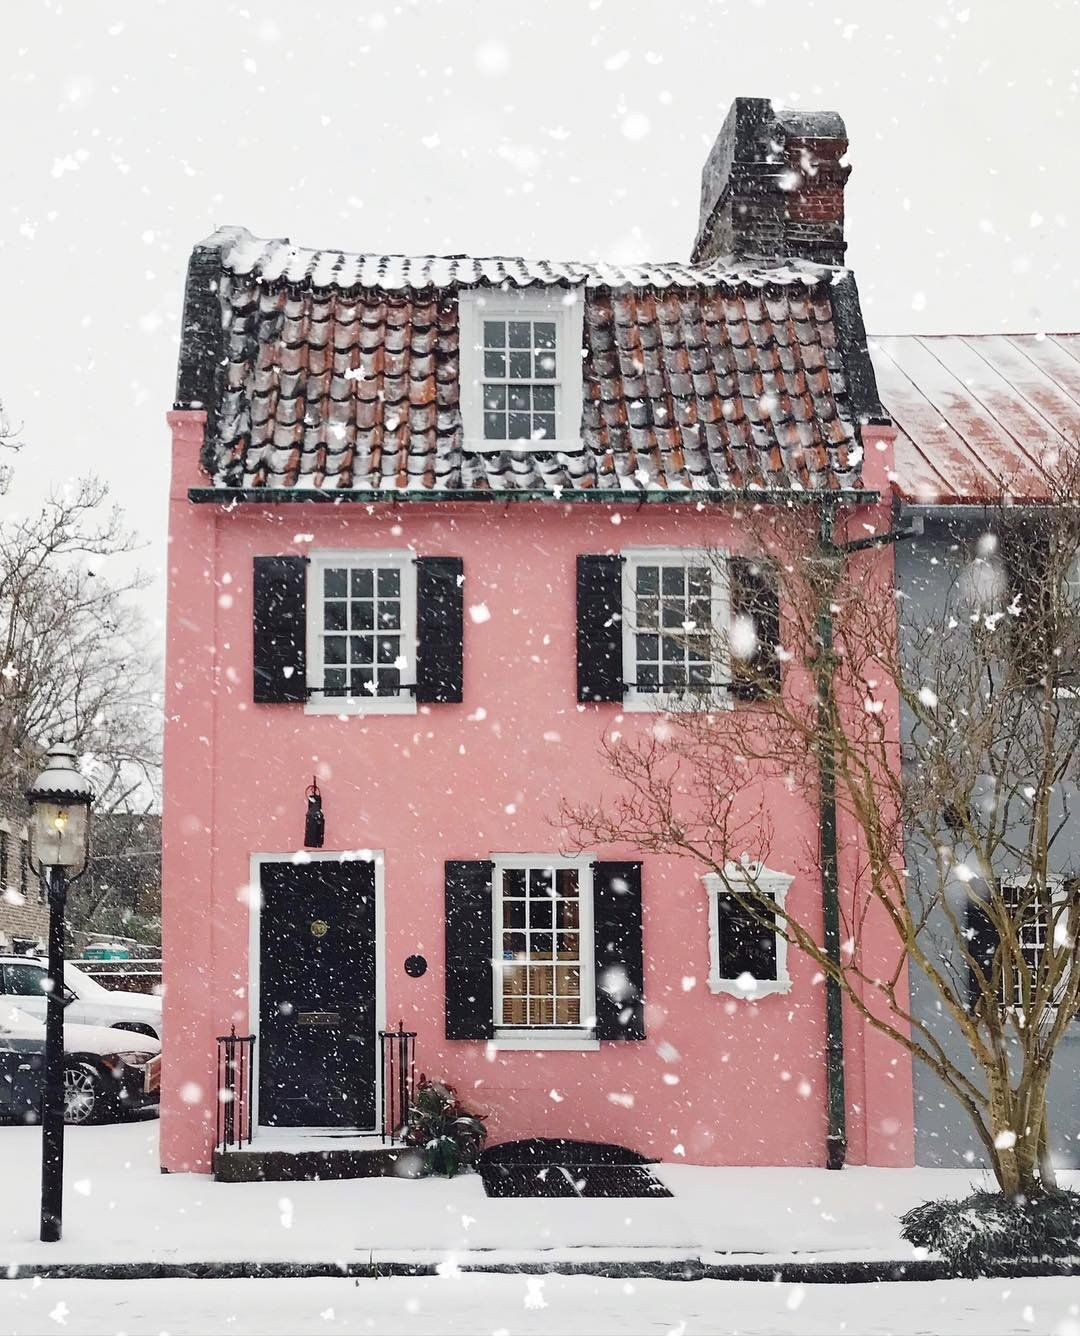 Pin by Frammitz on Colors | Pinterest | Winter, House and Future